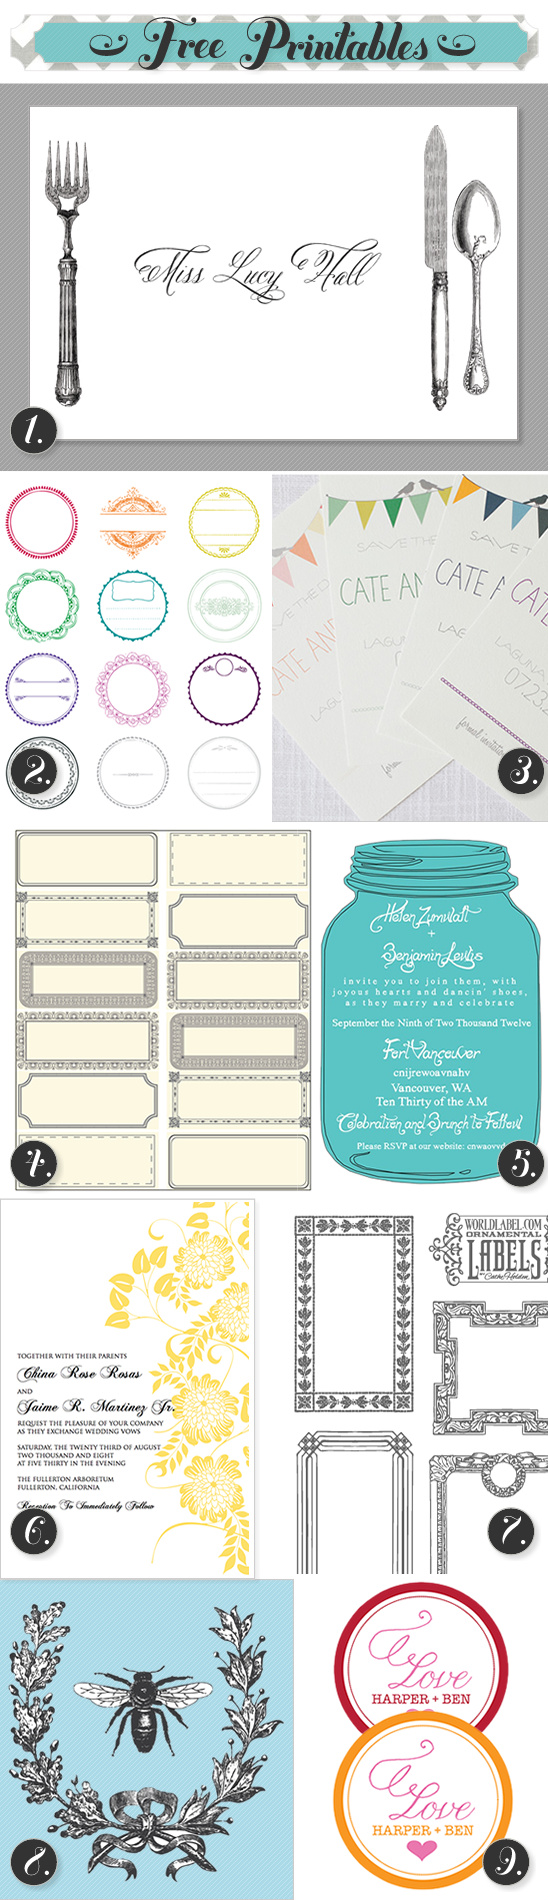 blog printable invitations printable invitations